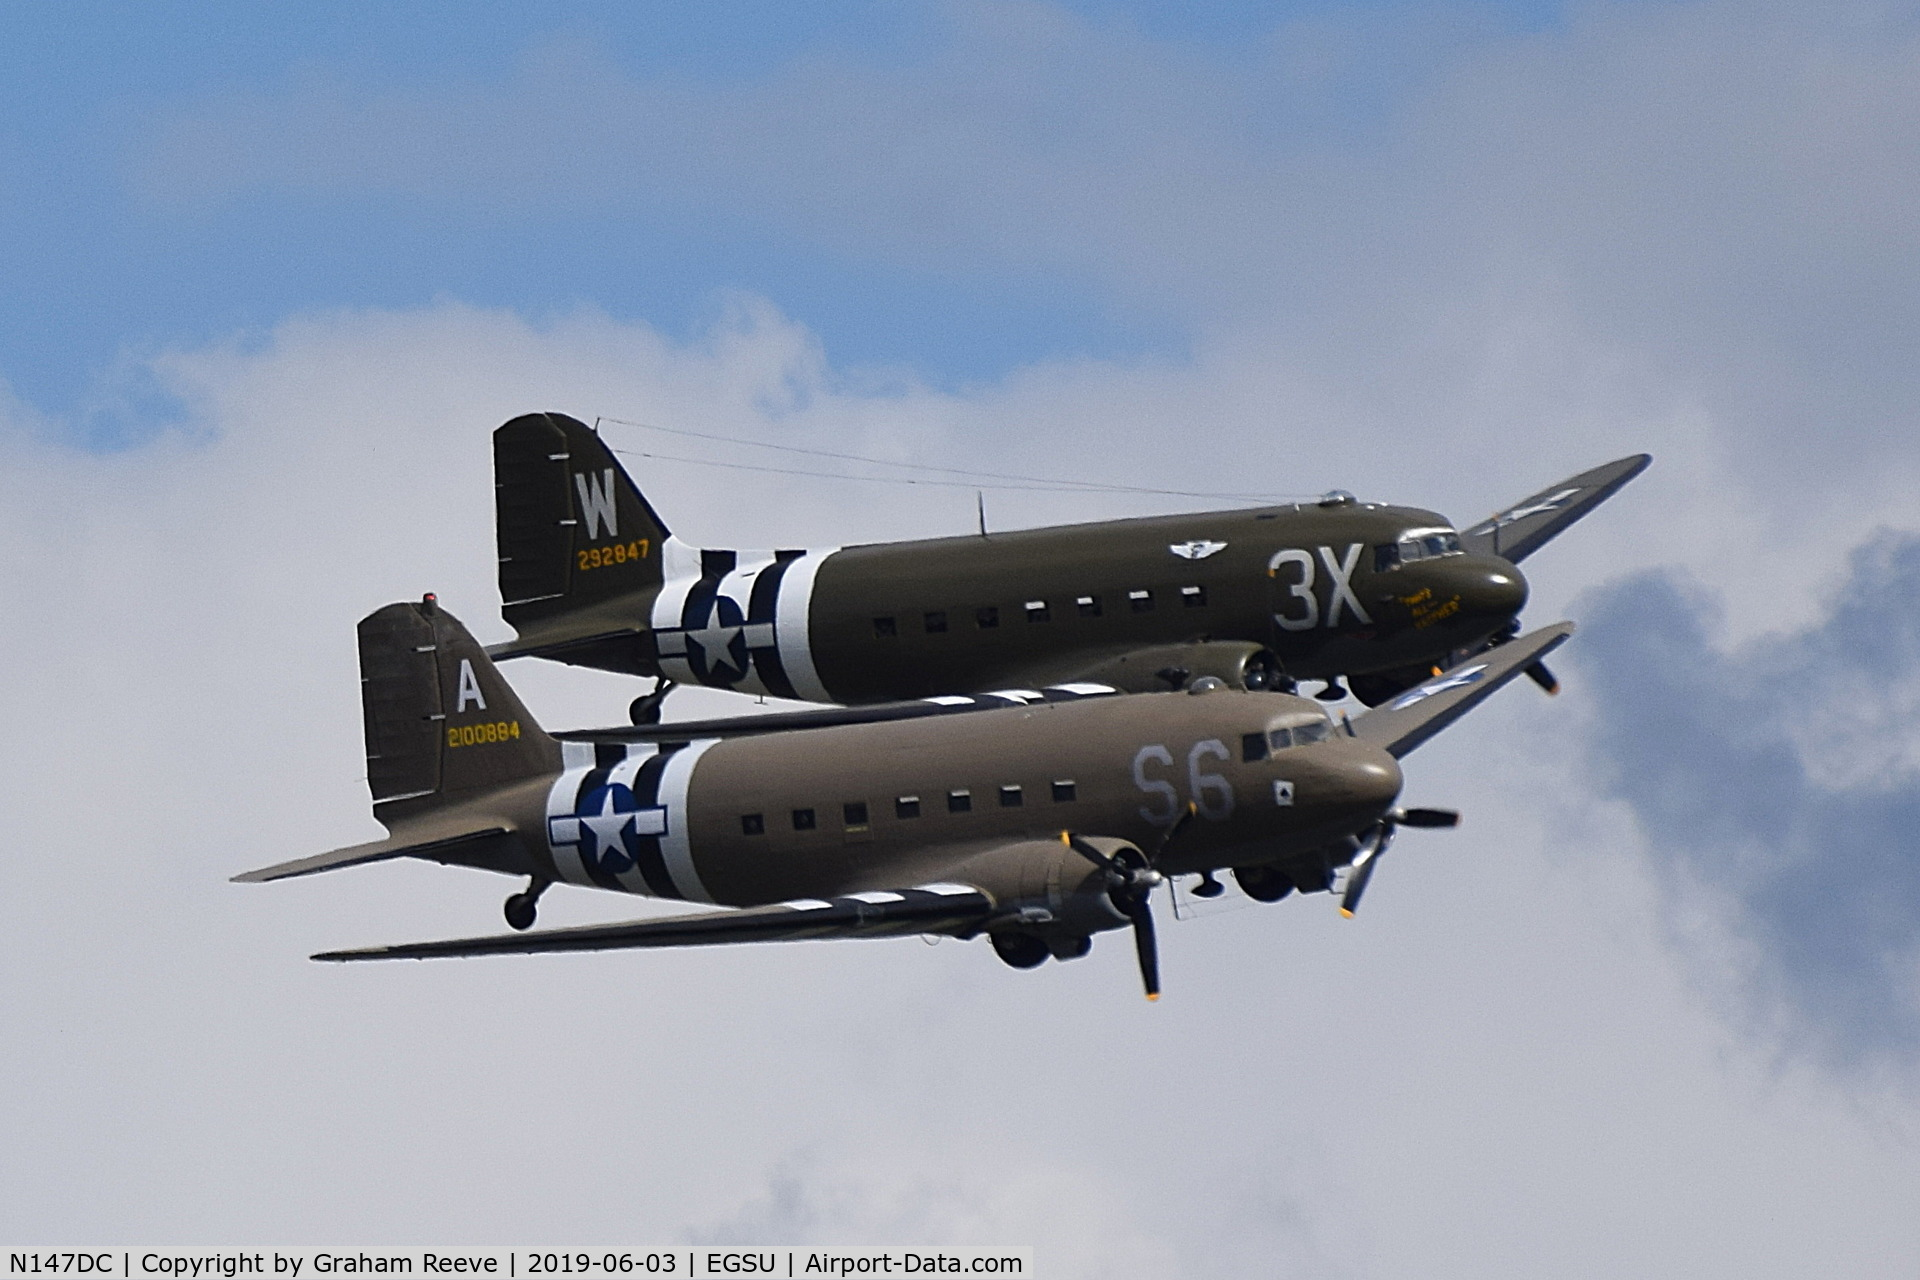 N147DC, 1943 Douglas C-47A Skytrain C/N 19347, N147DC and N47TB in formation over Duxford.